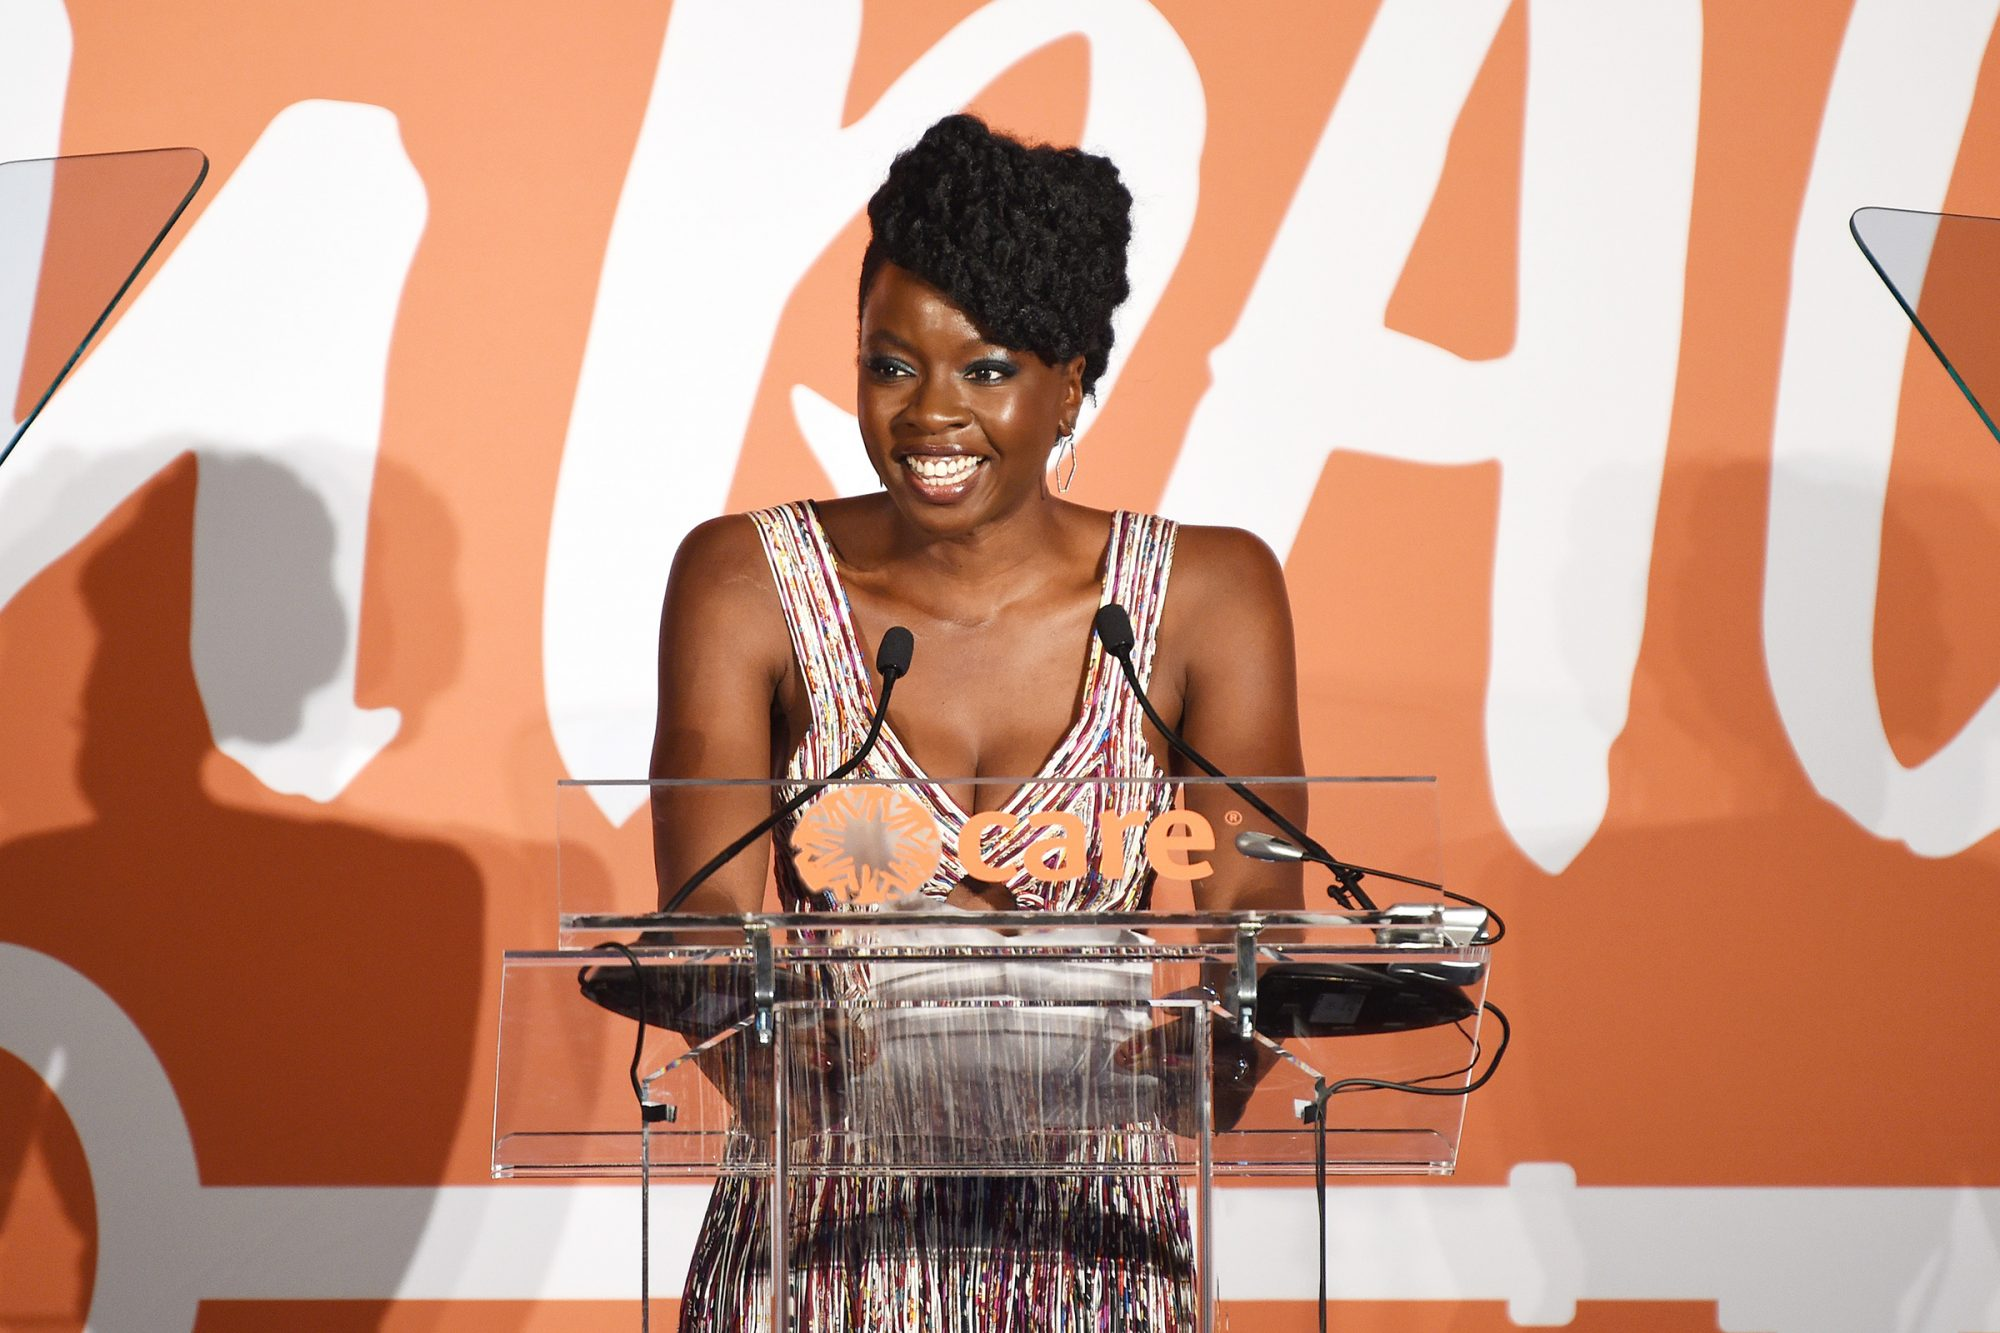 Danai Gurira speaks onstage during the 2nd Annual CARE Impact Awards Dinner at Mandarin Oriental on November 21, 2019 in New York City